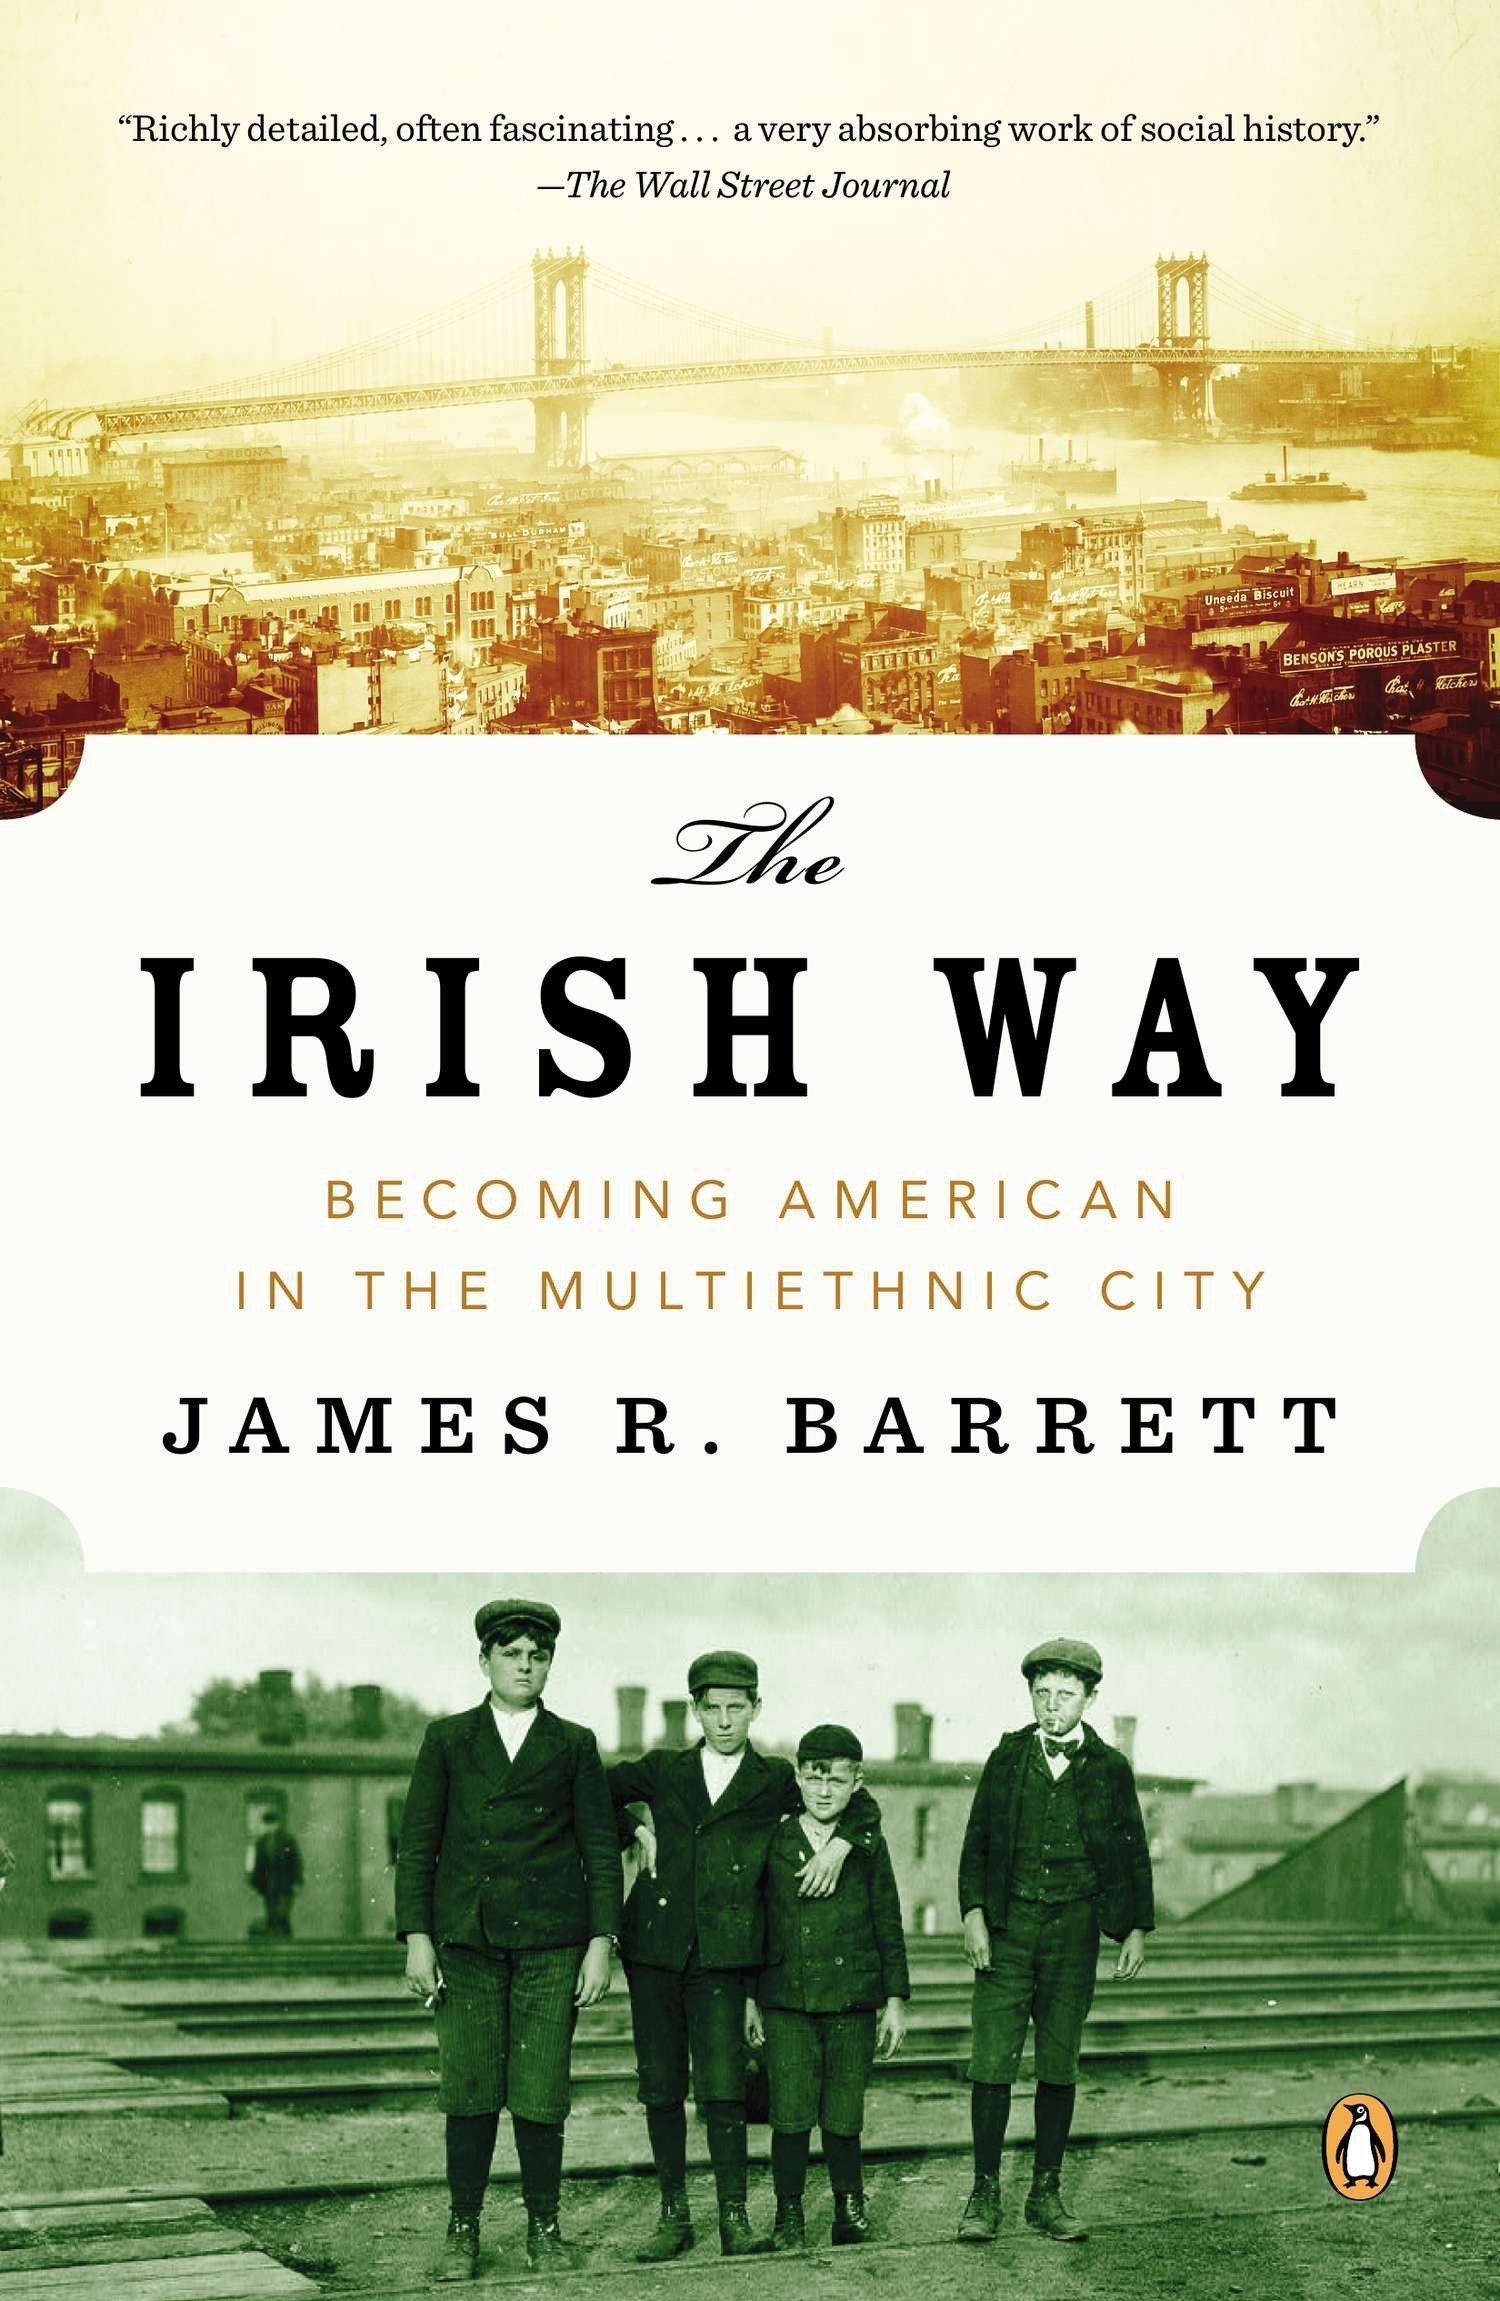 The Irish Way: Becoming American in the Multiethnic City (The Penguin History of American Life) Text fb2 book